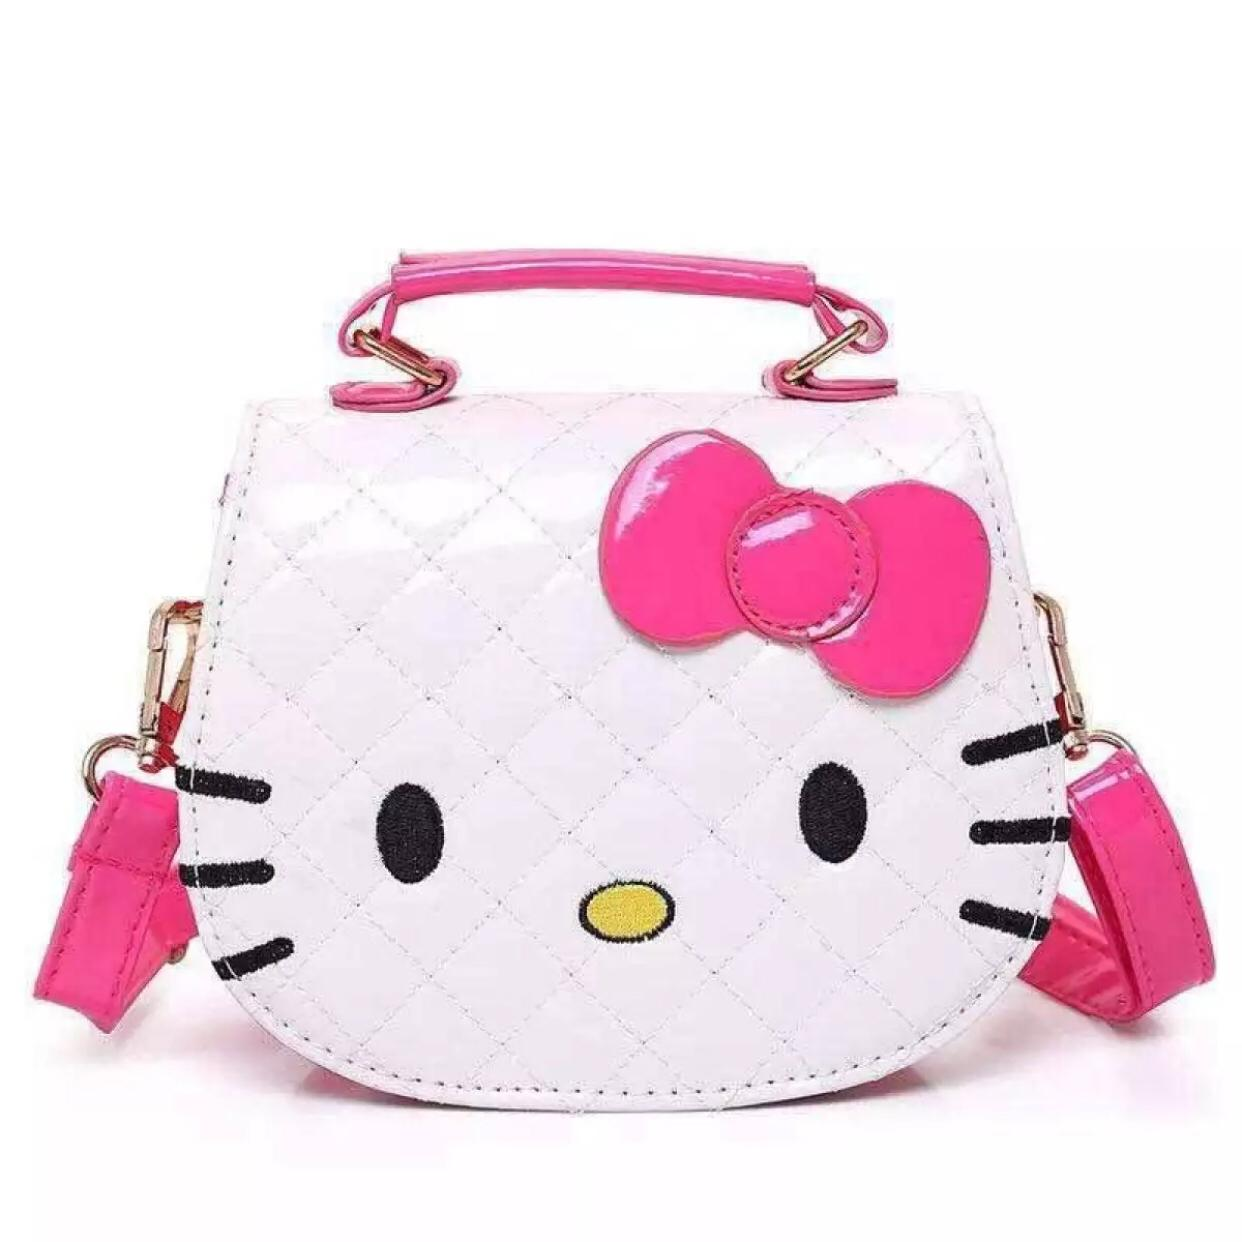 c4dd020c7 Hello Kitty Philippines: Hello Kitty price list - Backpack for Women ...